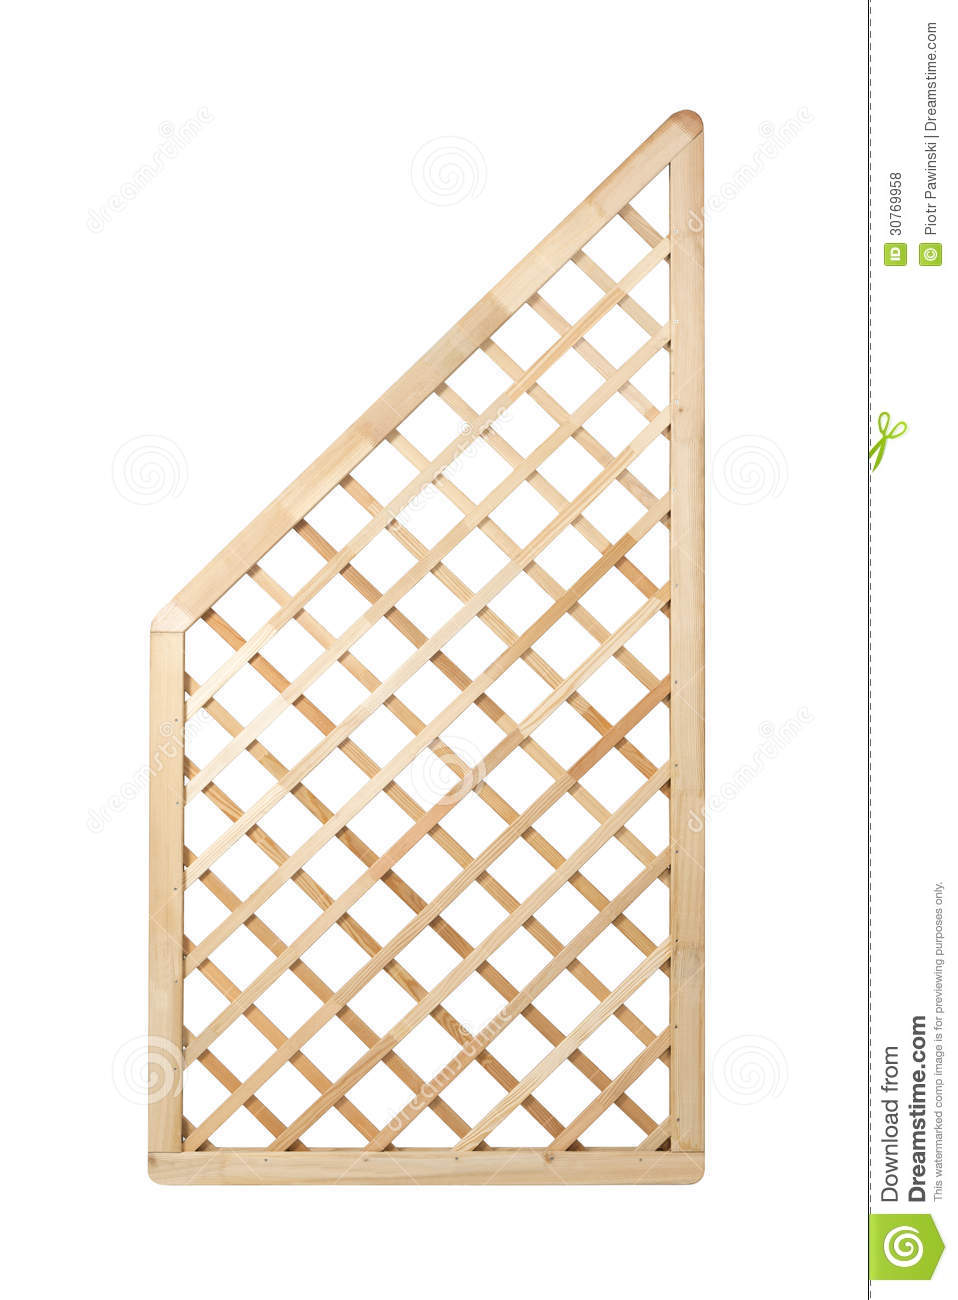 Wooden lattice fence royalty free stock photos image